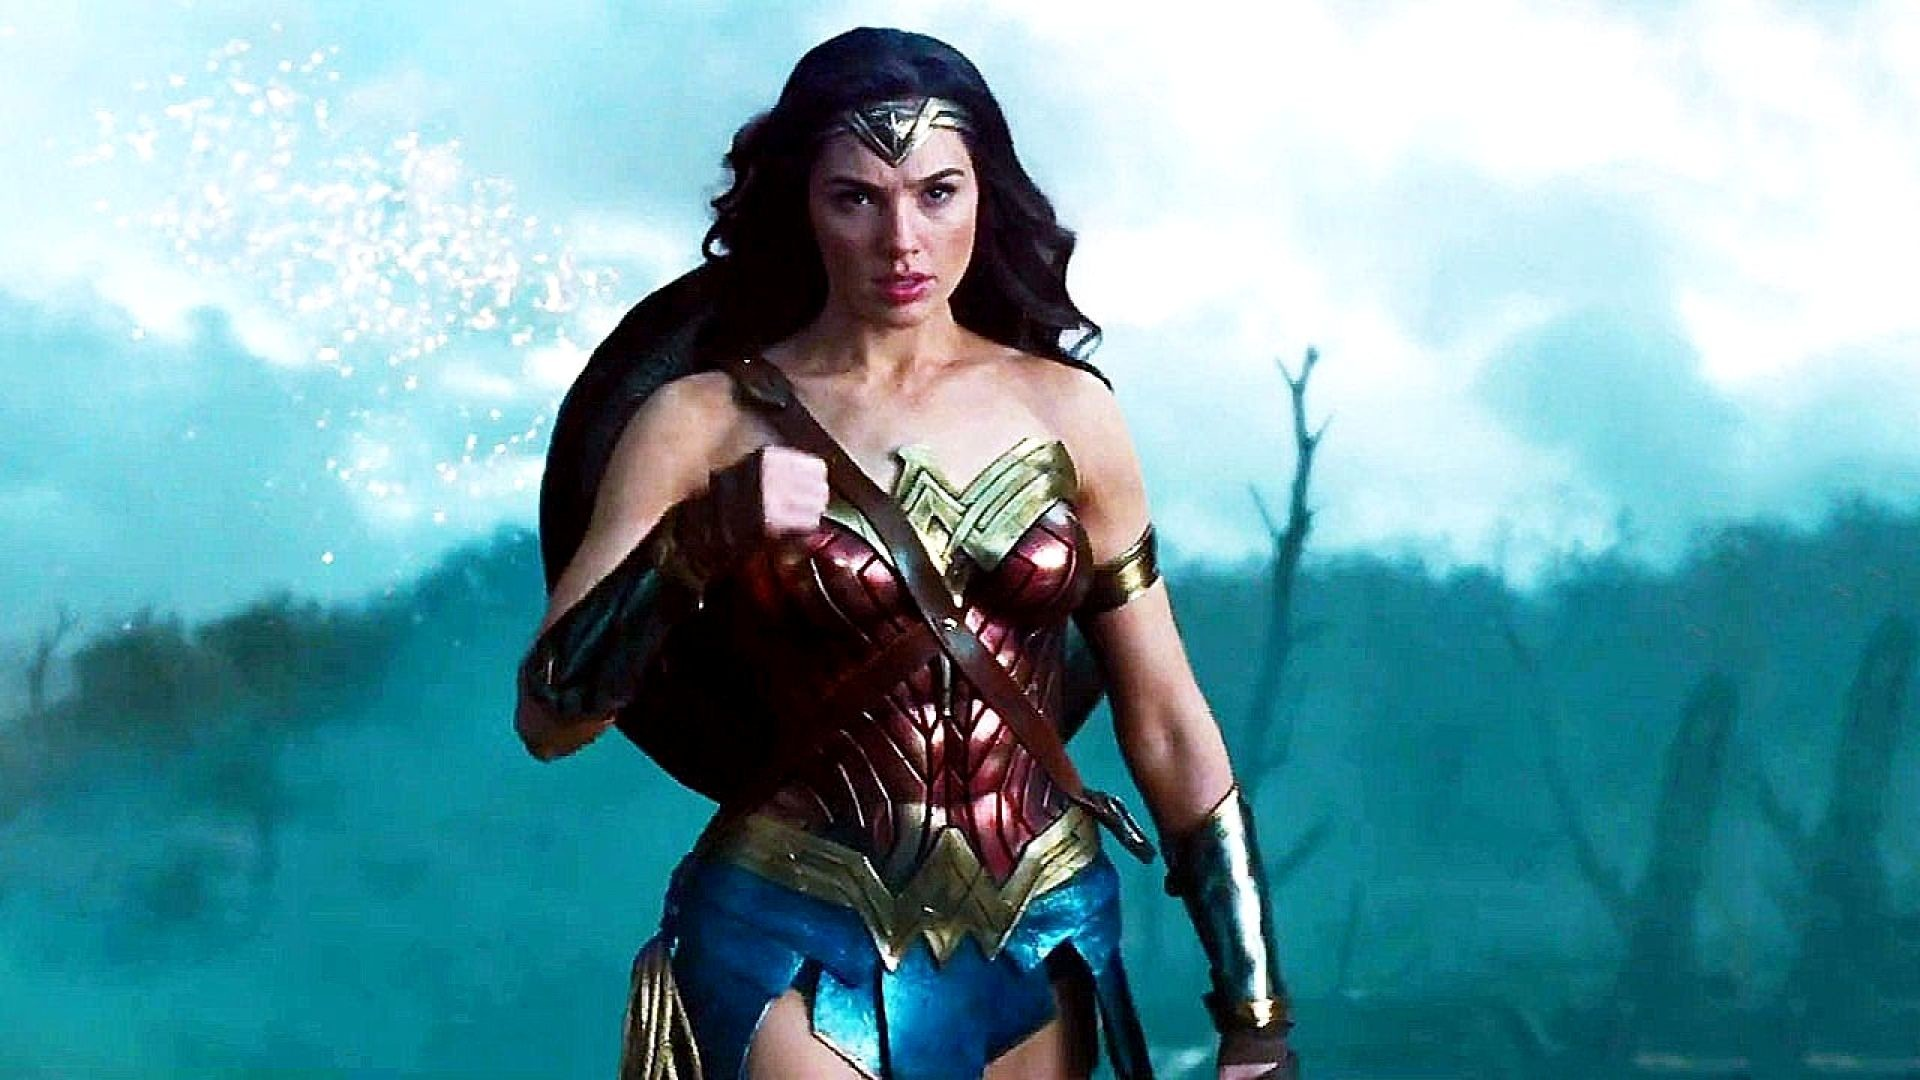 Res: 1920x1080, Wonder Woman Wallpapers Free To Download Wallpaper